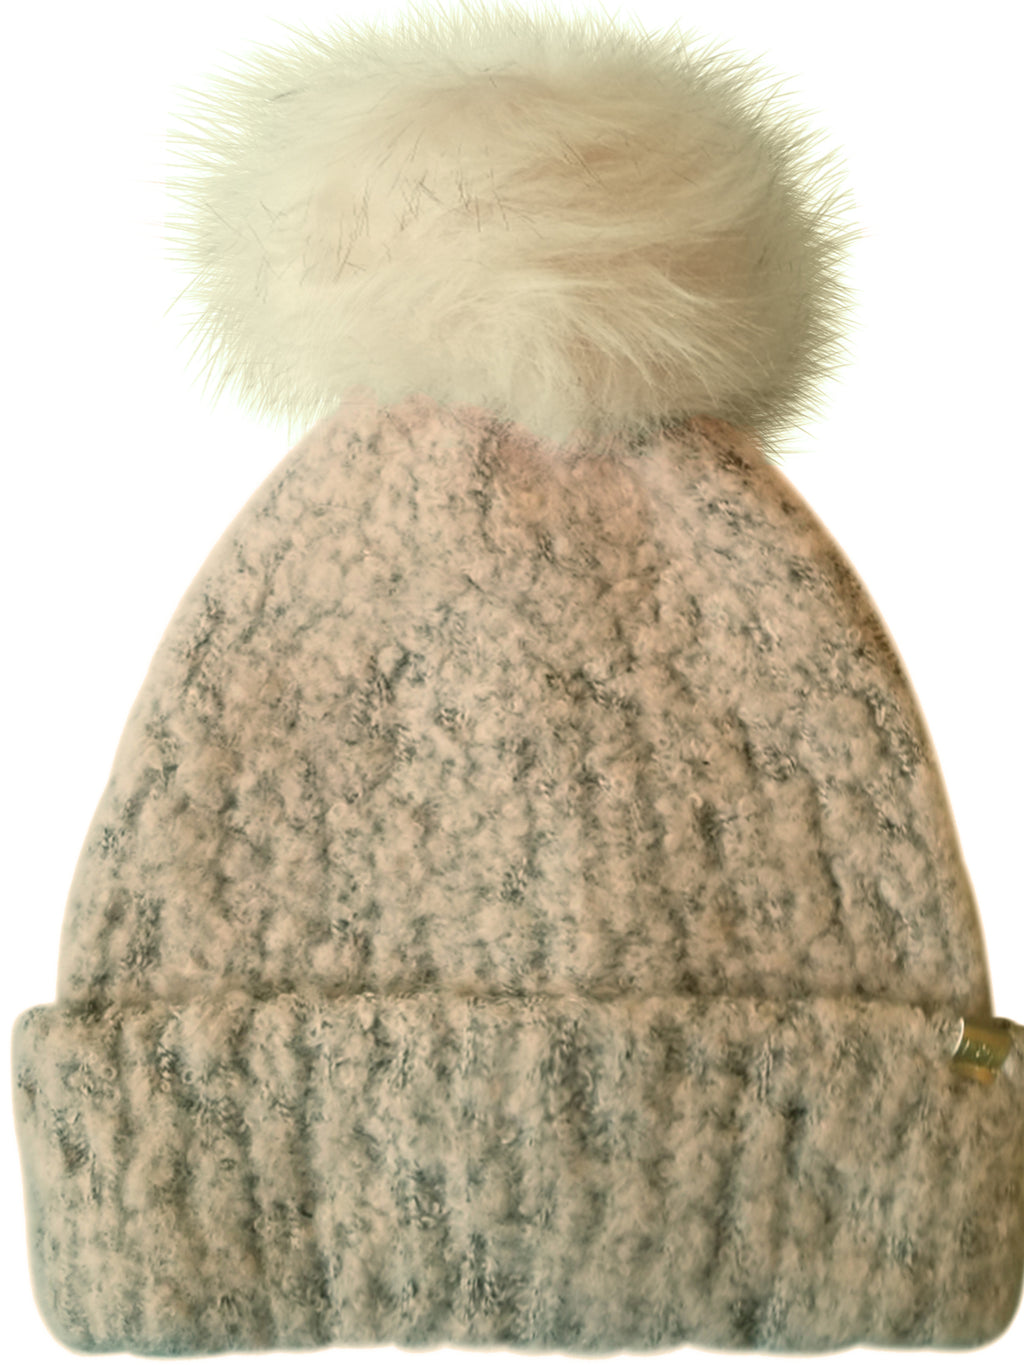 Beige Knit Beanie Hat With Faux Fur Pom Pom